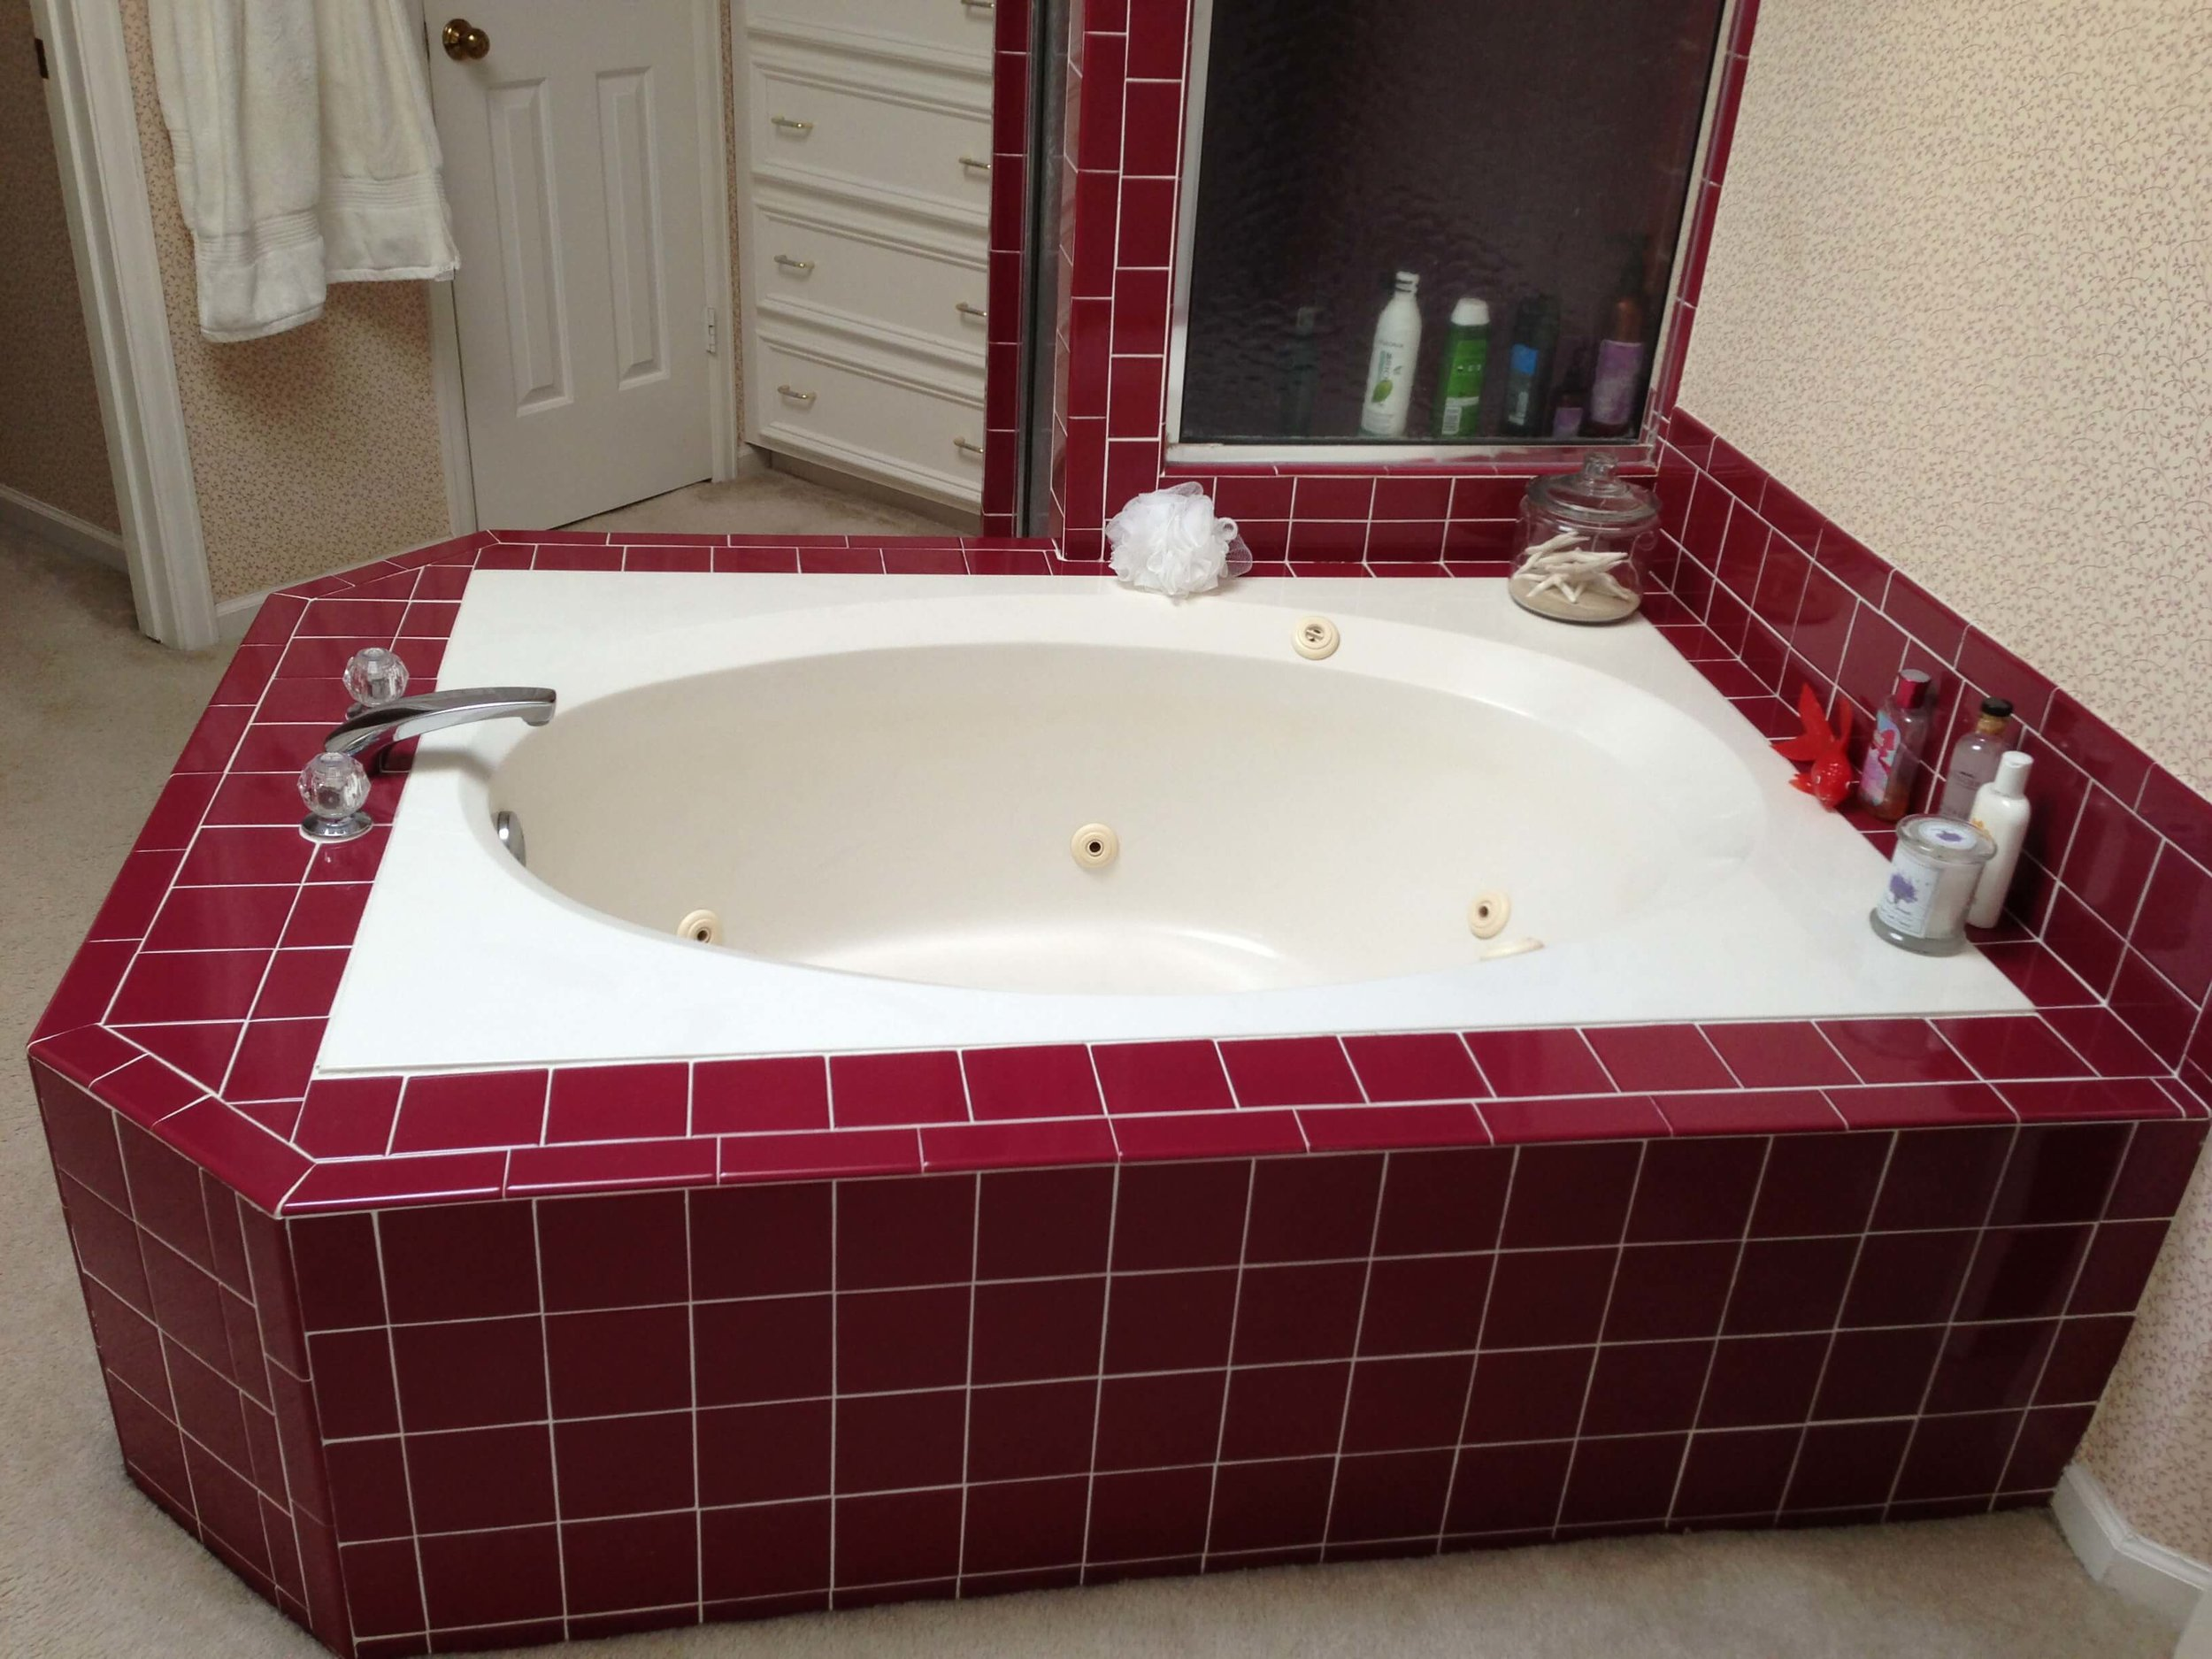 BEFORE  - This deck mounted tub projected out into the bath floor space and was a real eyesore in the room. #bathroomremodel #tub #bathroomdesign